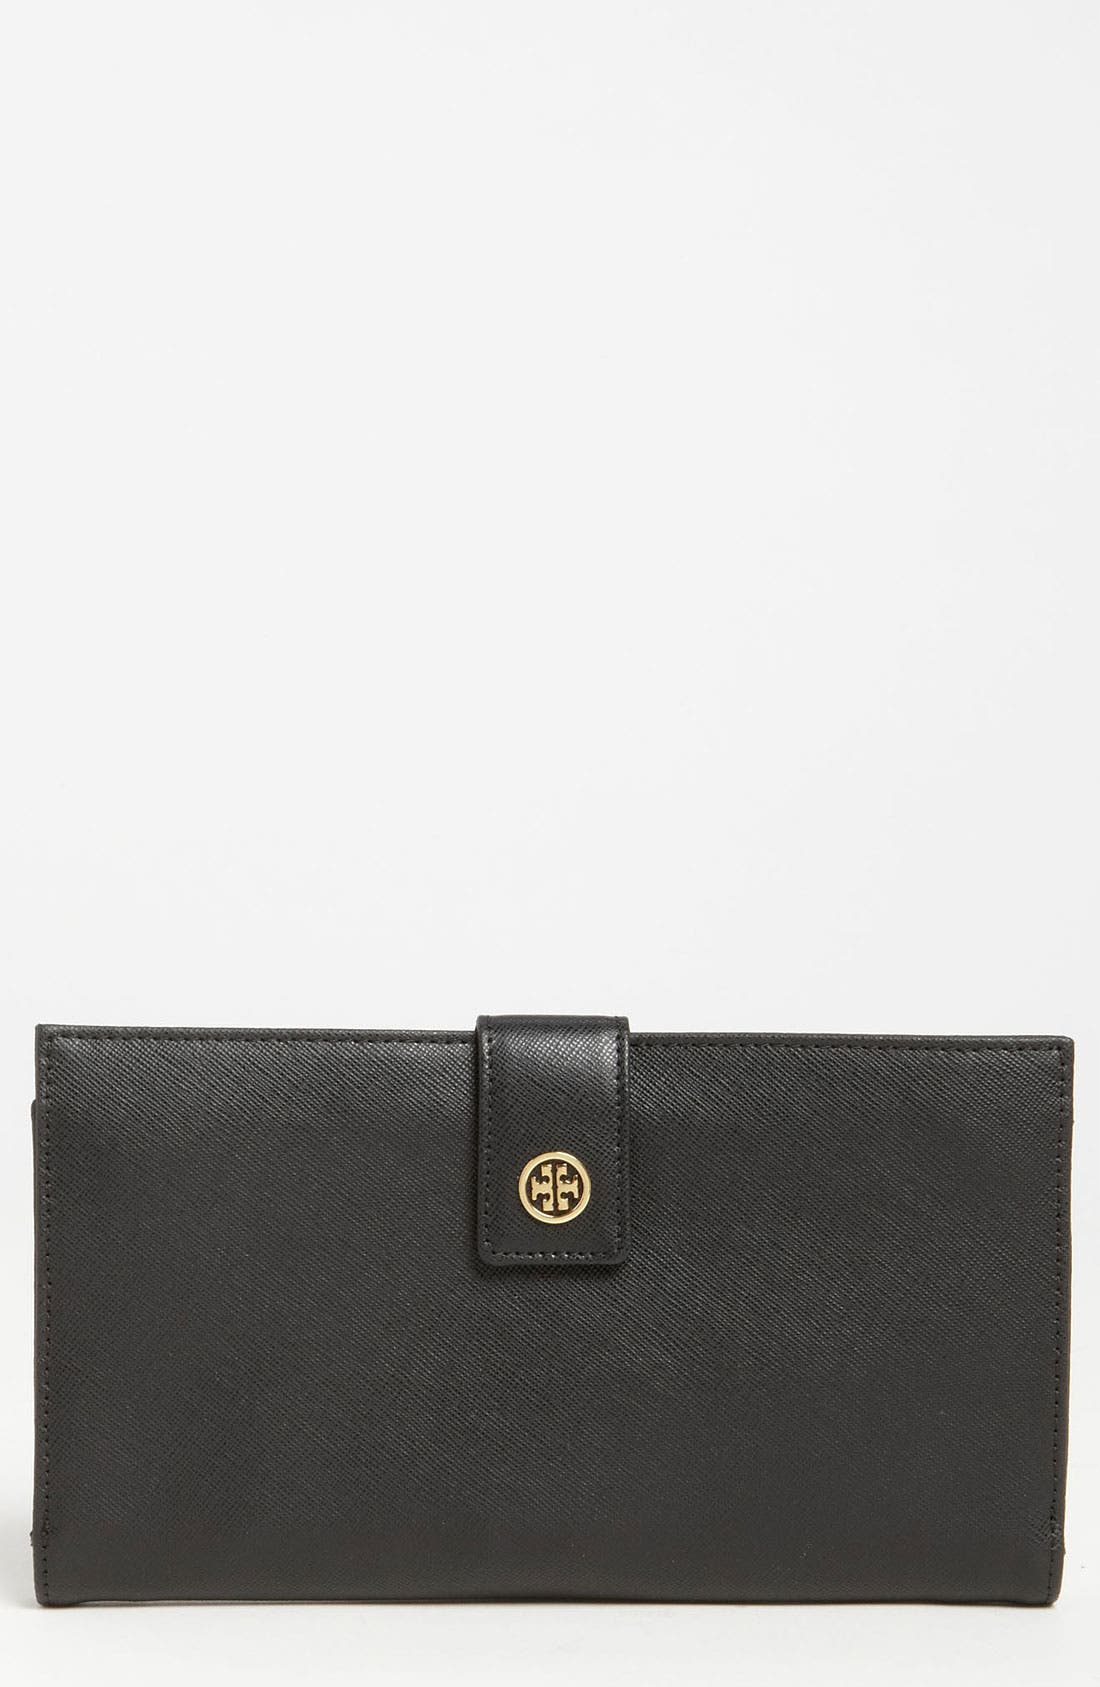 Alternate Image 1 Selected - Tory Burch 'Robinson' Oversized Travel Wallet